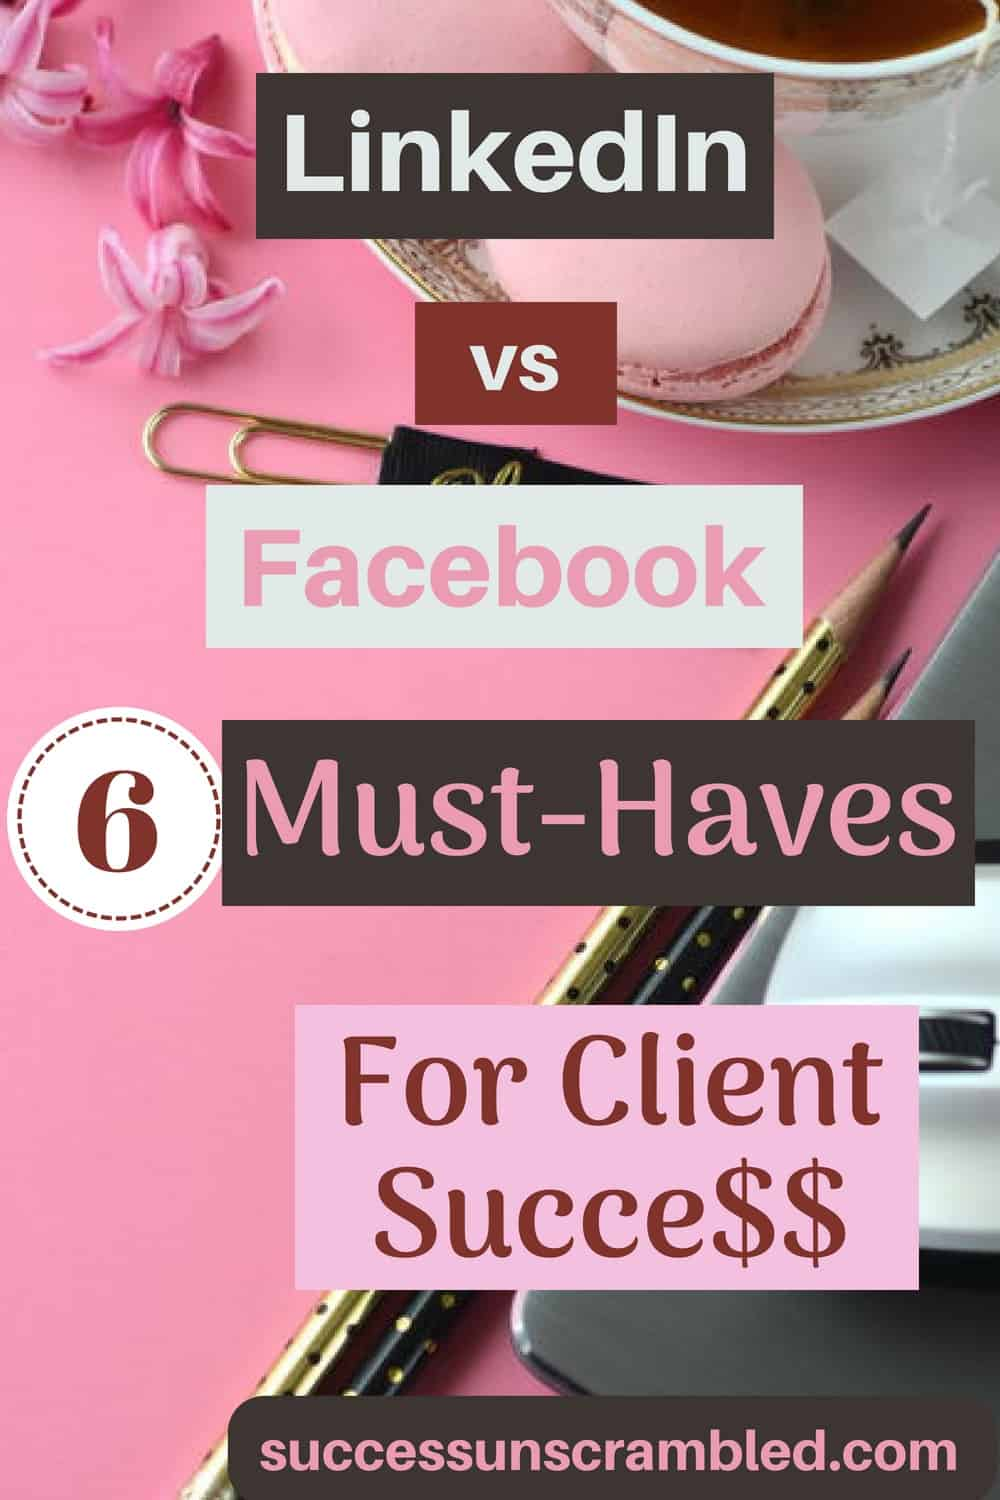 LinkedIn vs Facebook_ 6 Must-Haves For Succe$$